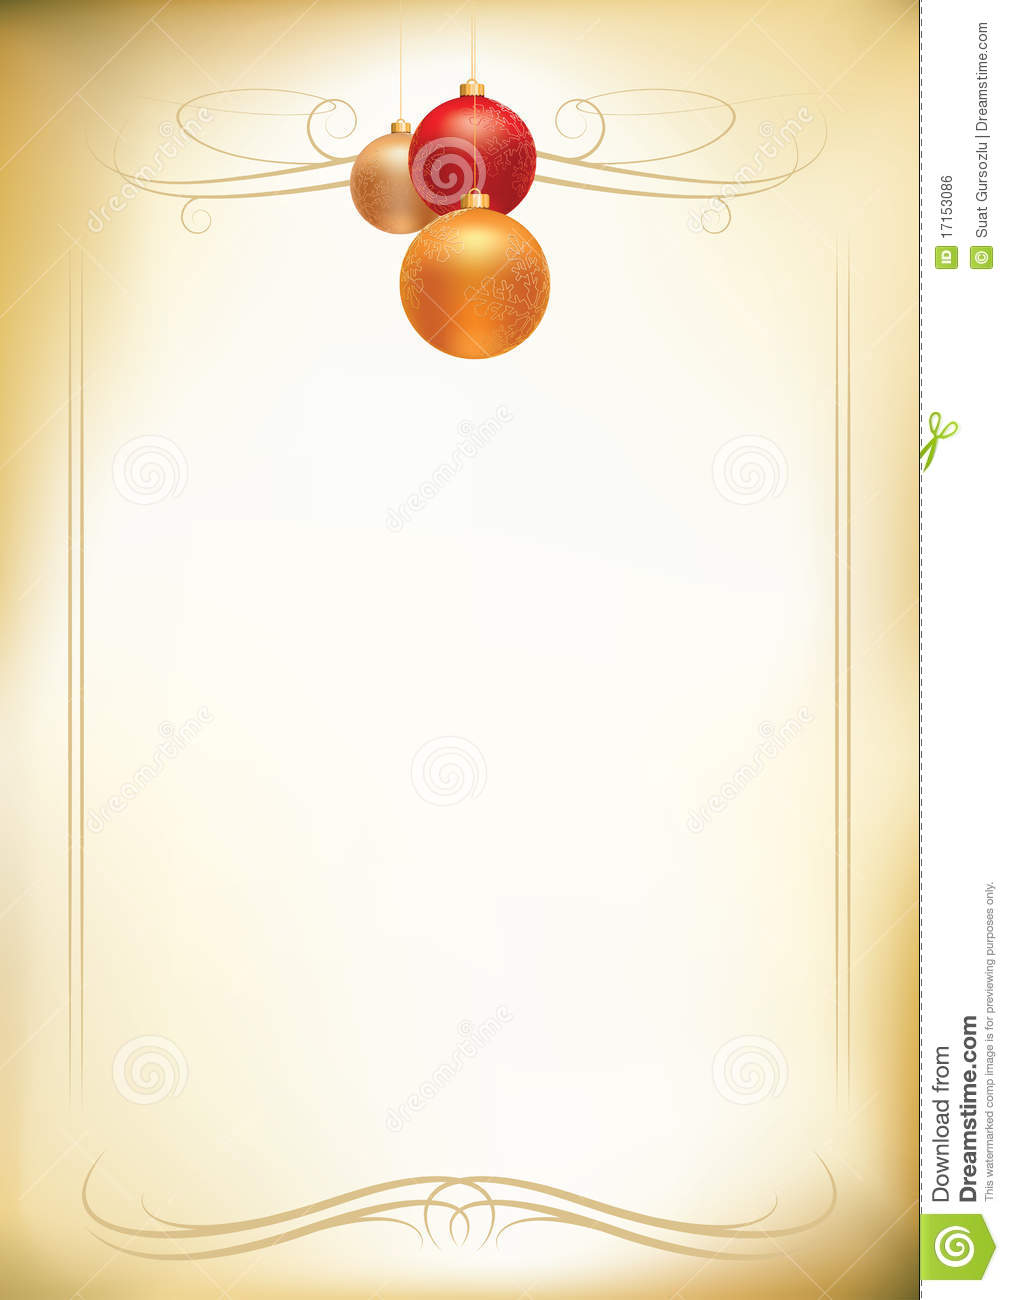 Christmas Letterhead Royalty Free Stock Image - Image: 17153086